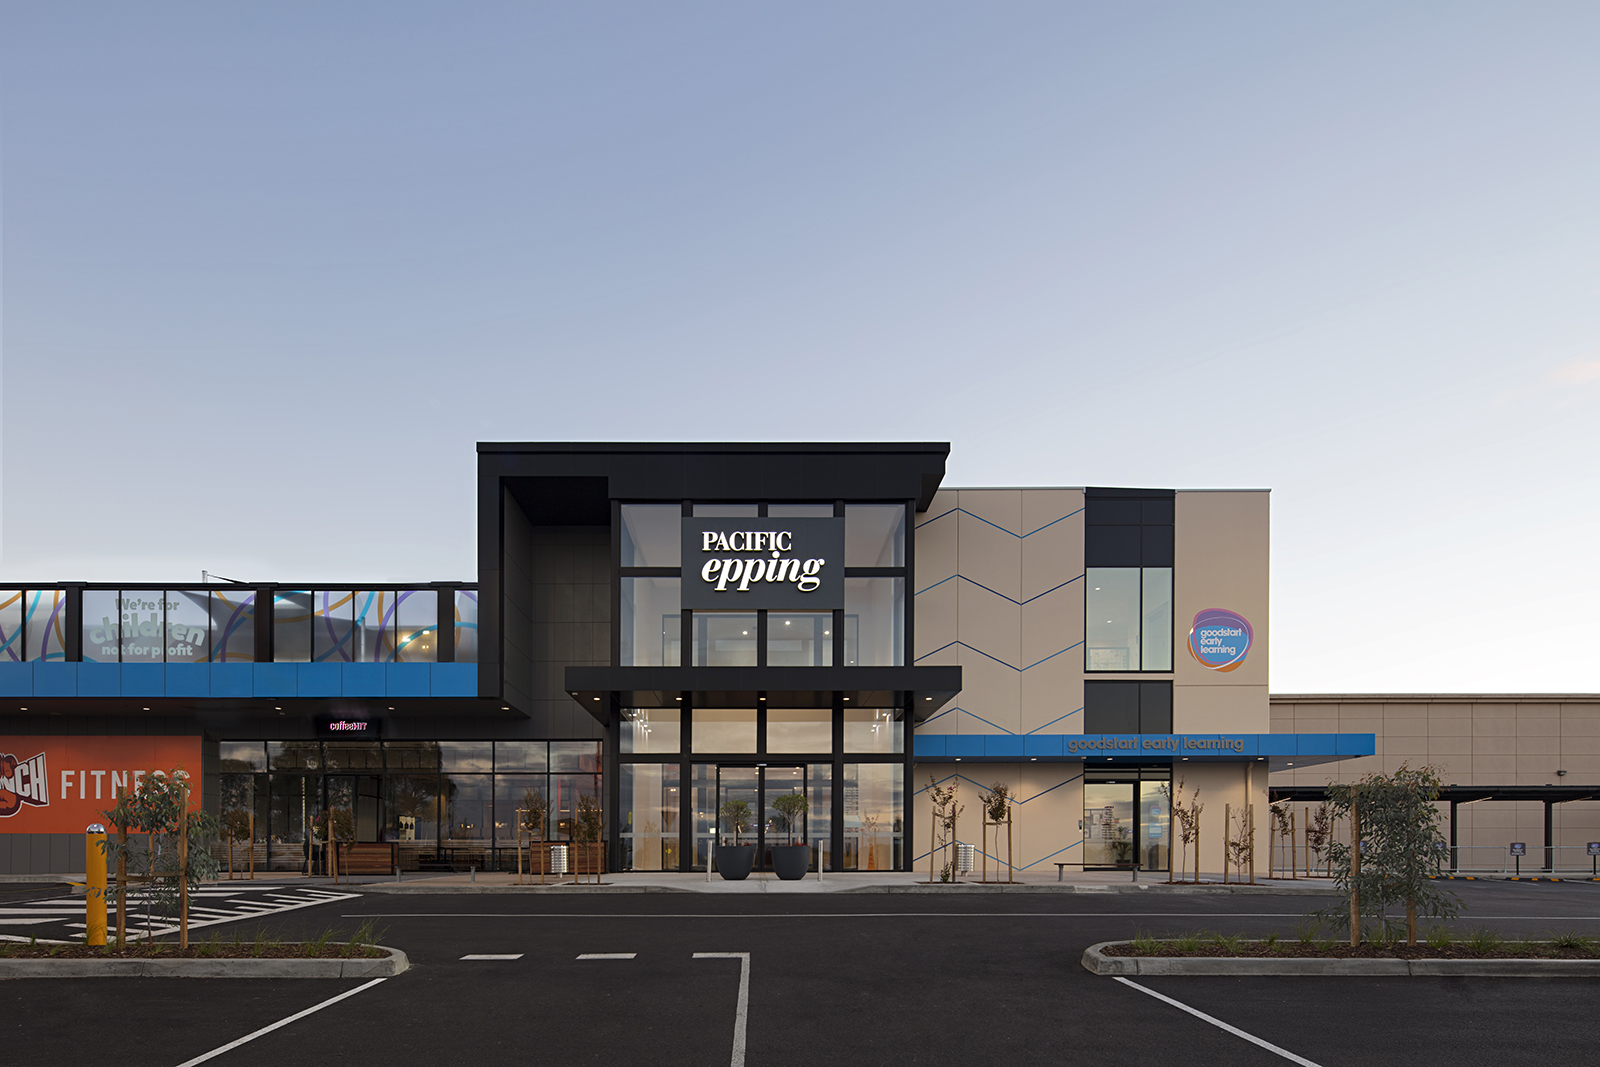 Pacific_Epping_Childcare_CentreM_Lowres_00074.jpg